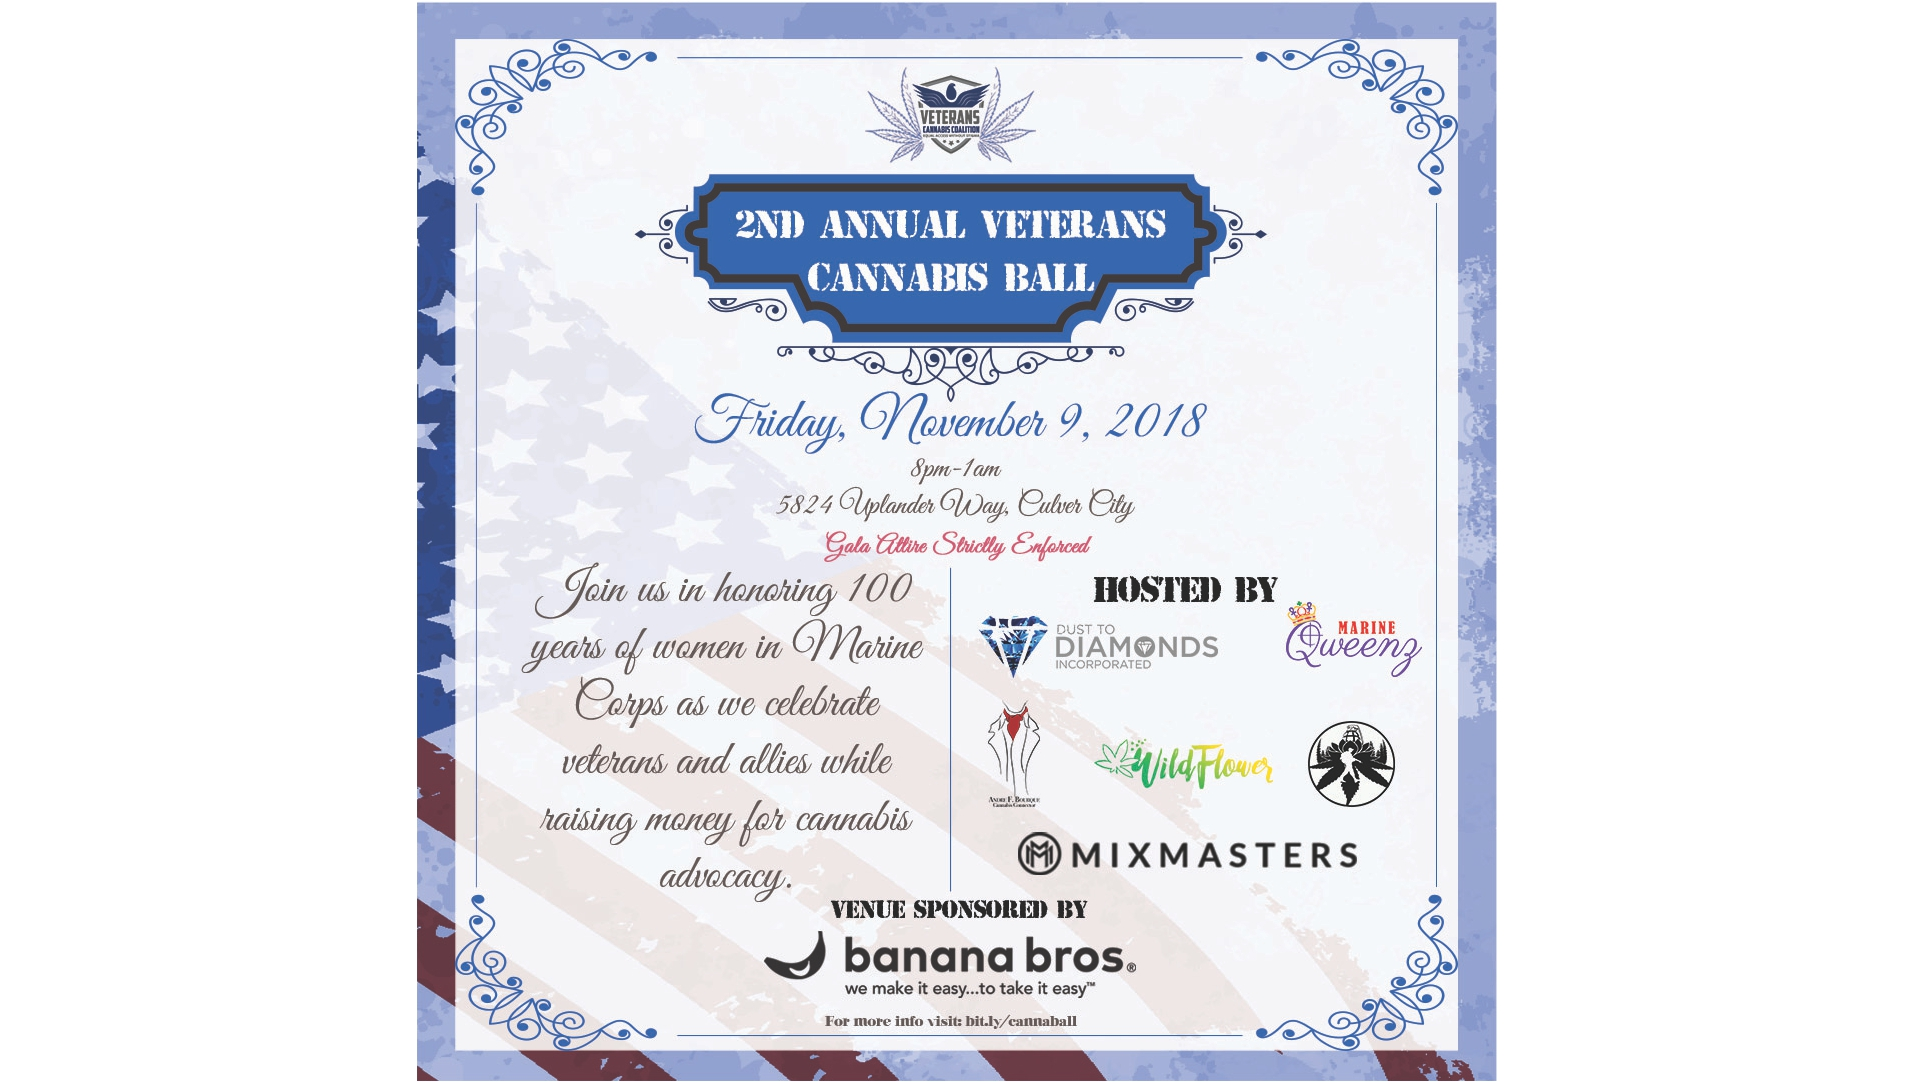 2nd Annual Veterans Cannabis Ball